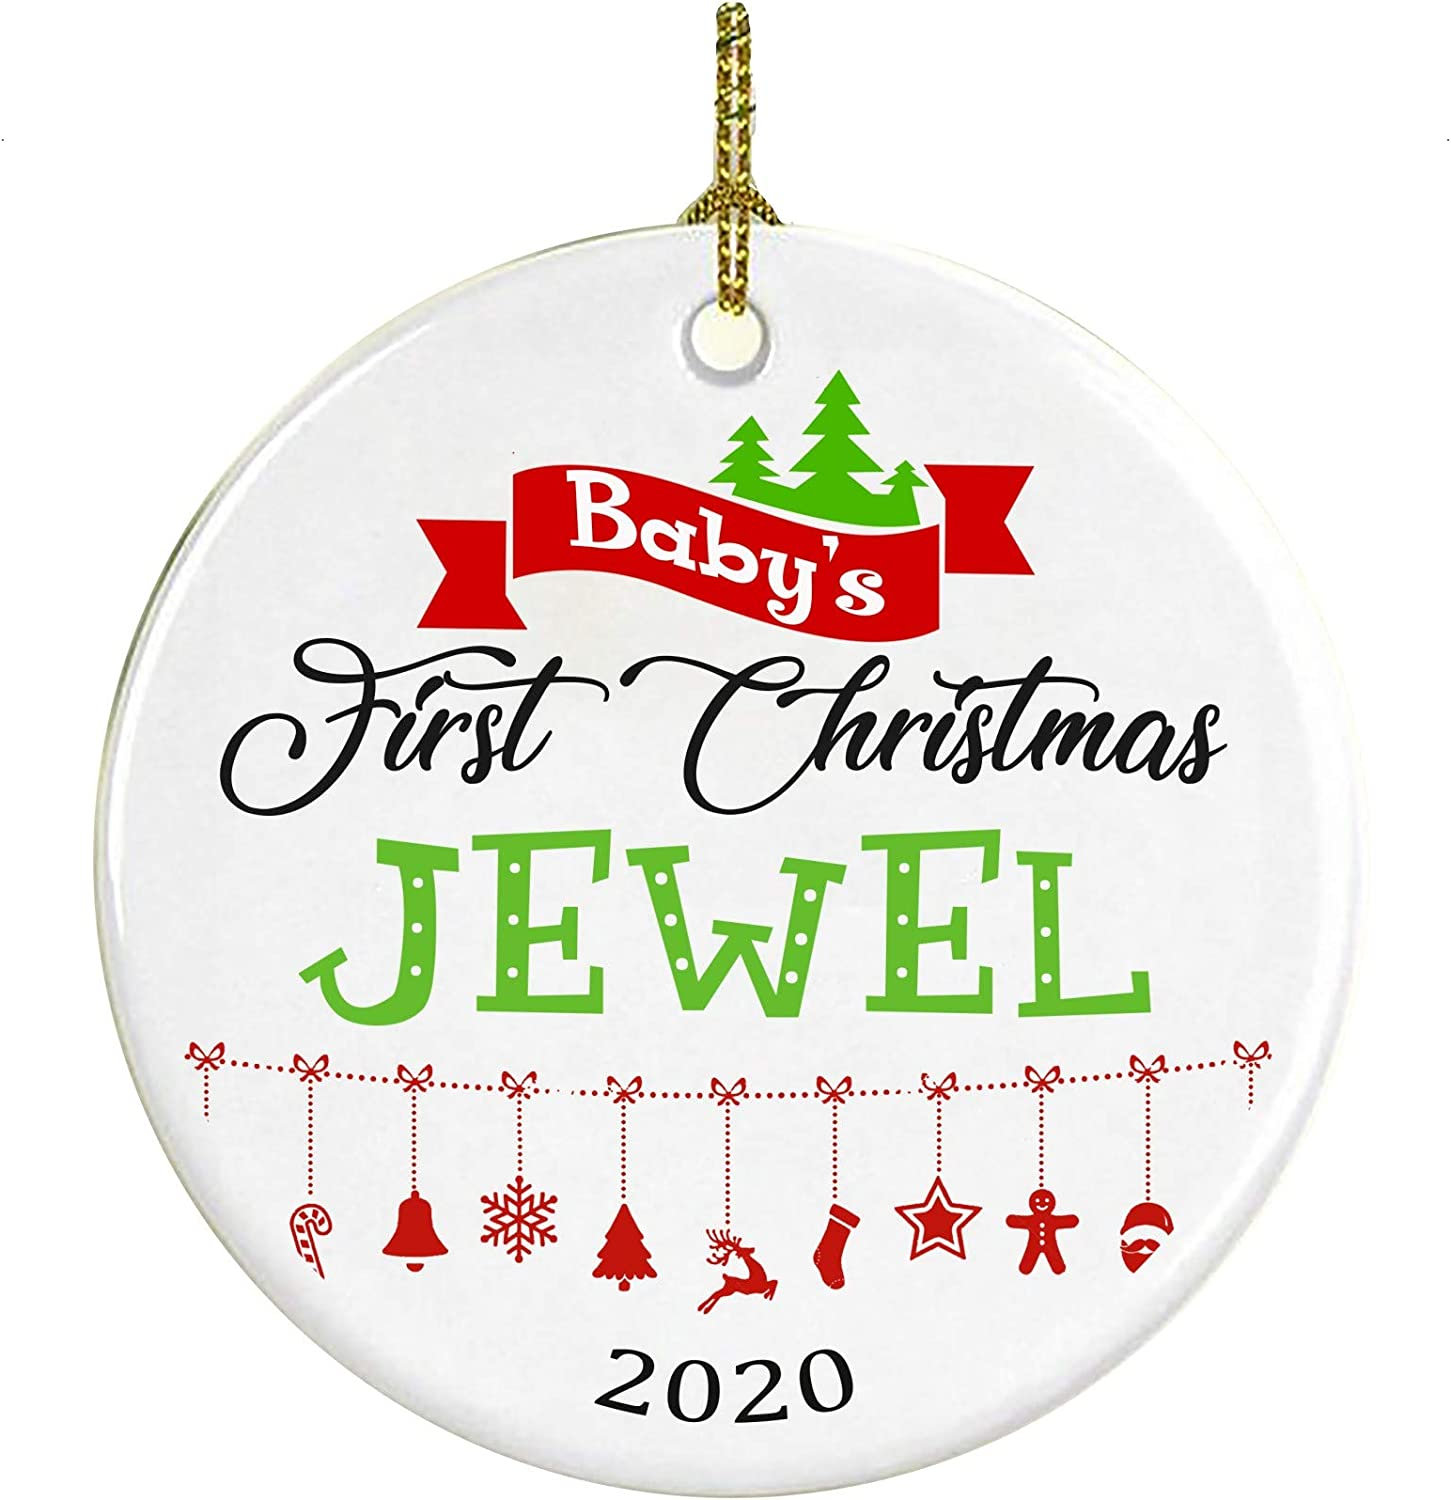 Is Jewel Open On Christmas 2020 Amazon.com: Christmas Tree Ornament Decoration Baby First